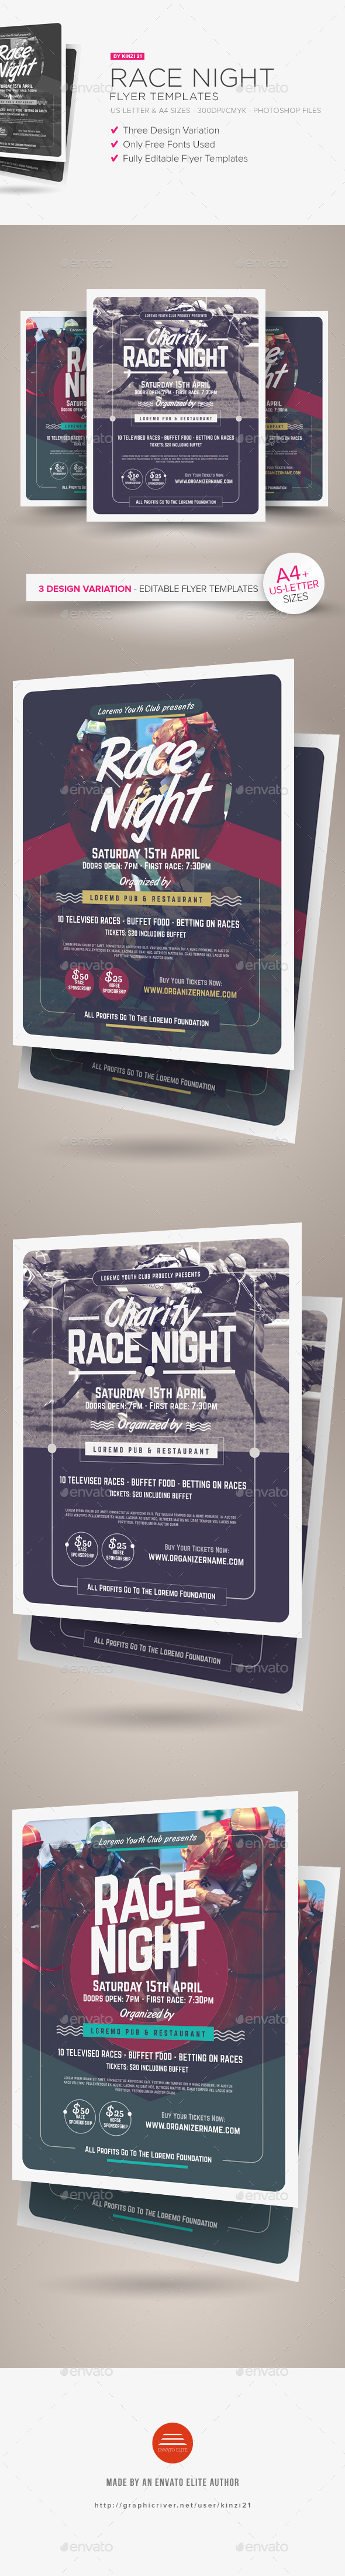 Race Night Flyer Templates - Miscellaneous Events